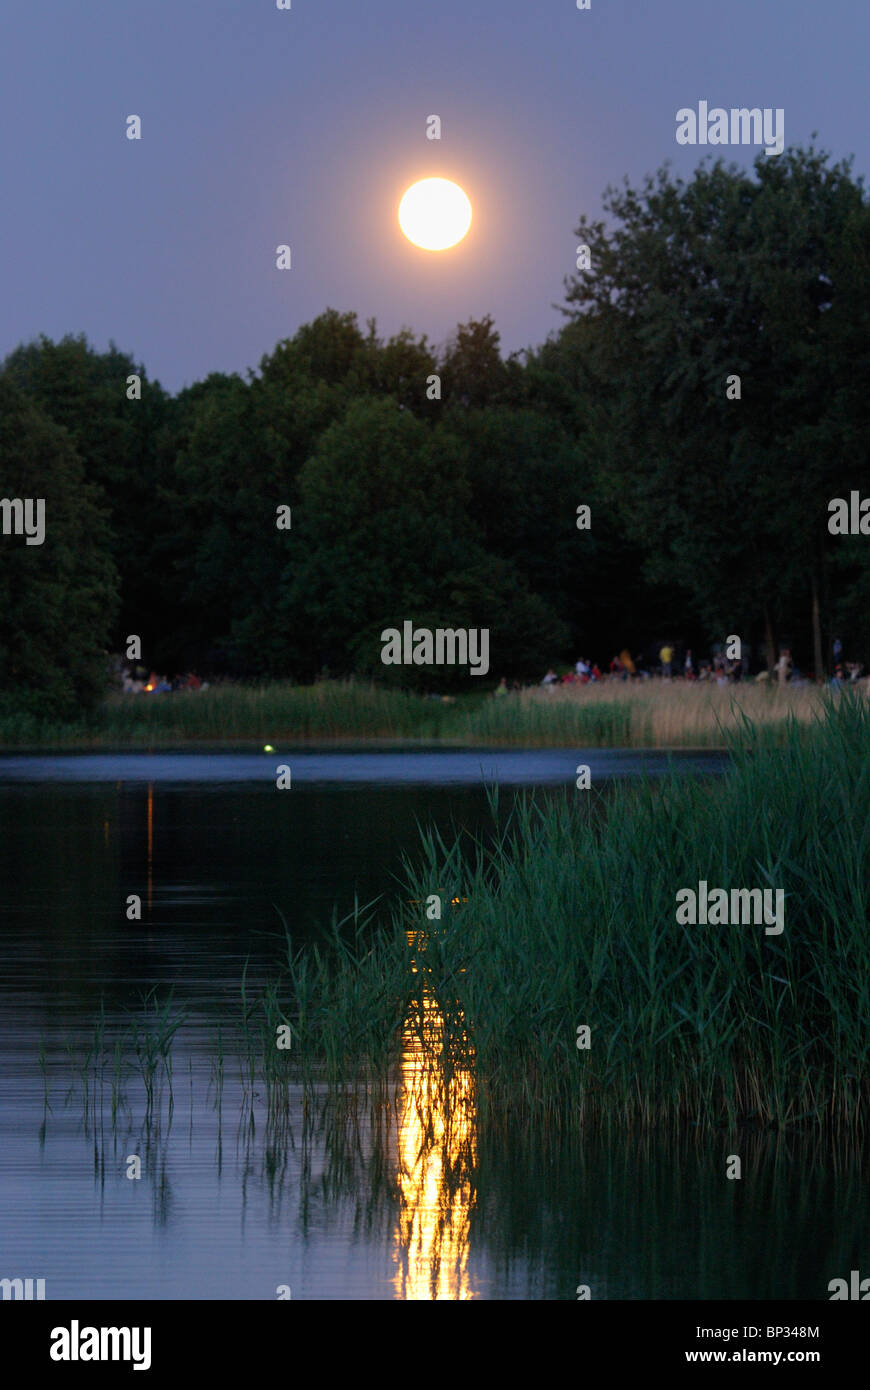 Britzer Garten Wasserspielplatz Midsummer Night Full Moon Over The Lake Buga Park Britzer